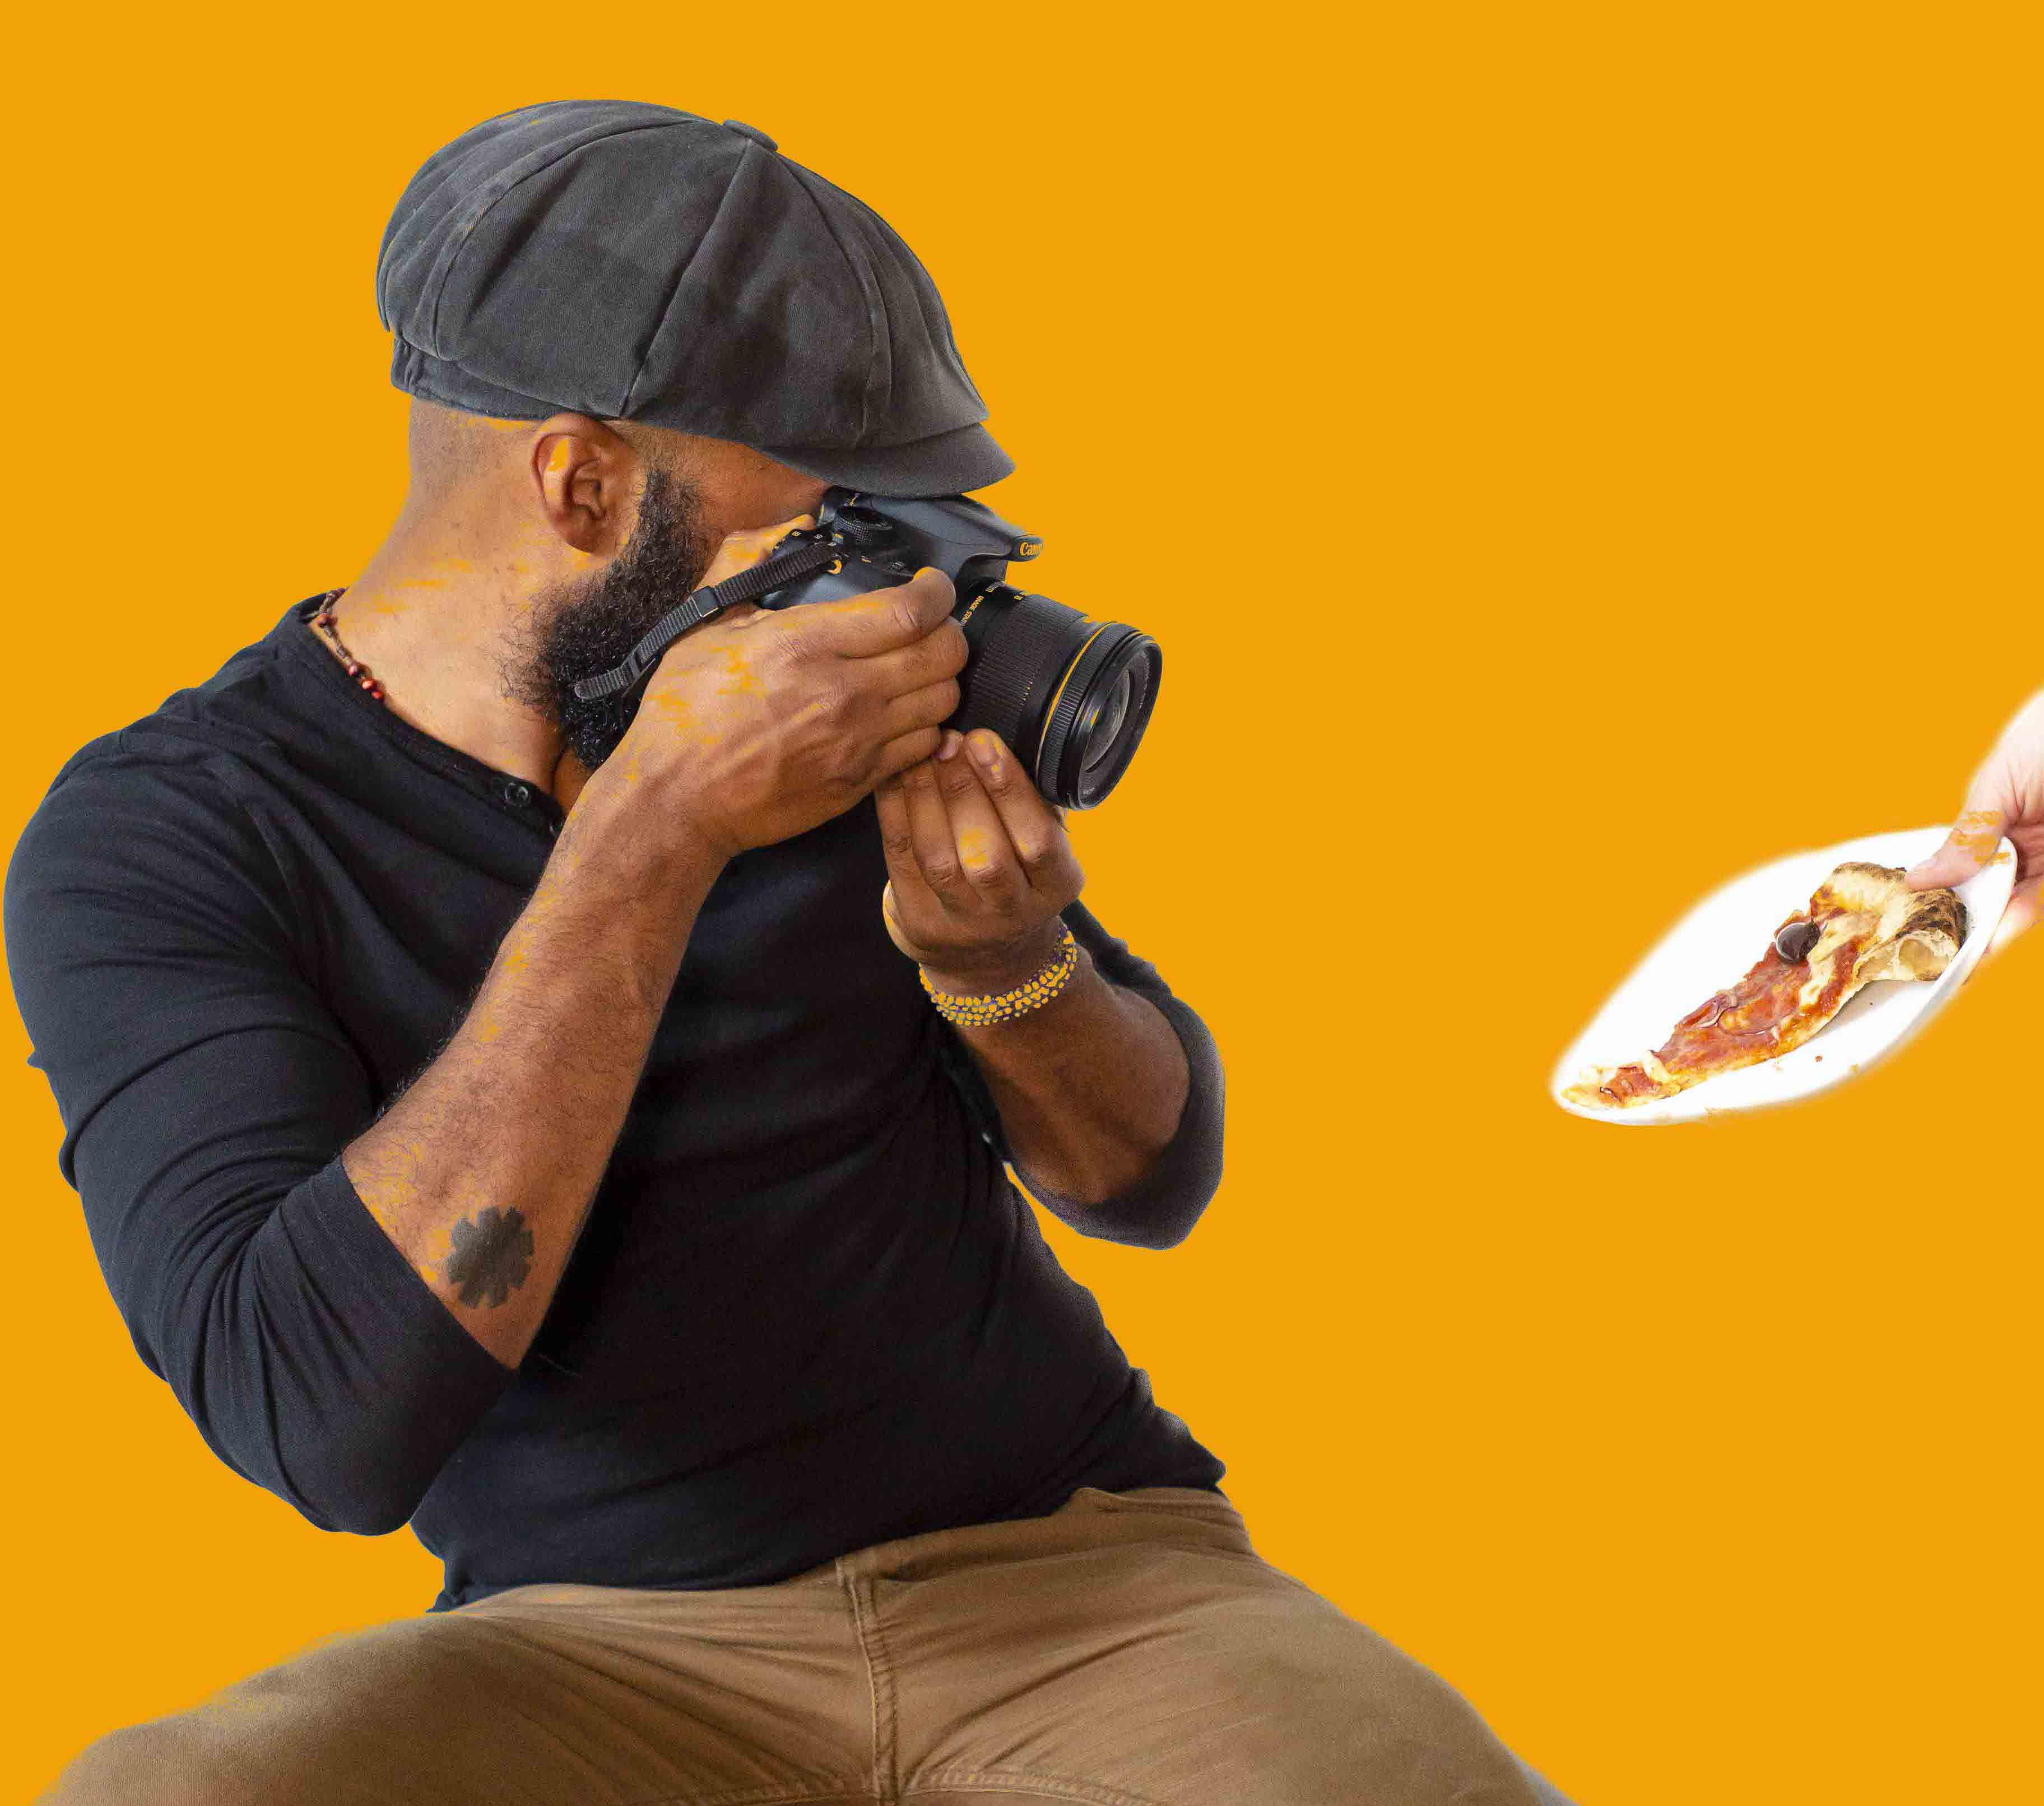 Photographer Louis Hansel taking photo of a slice of pizza